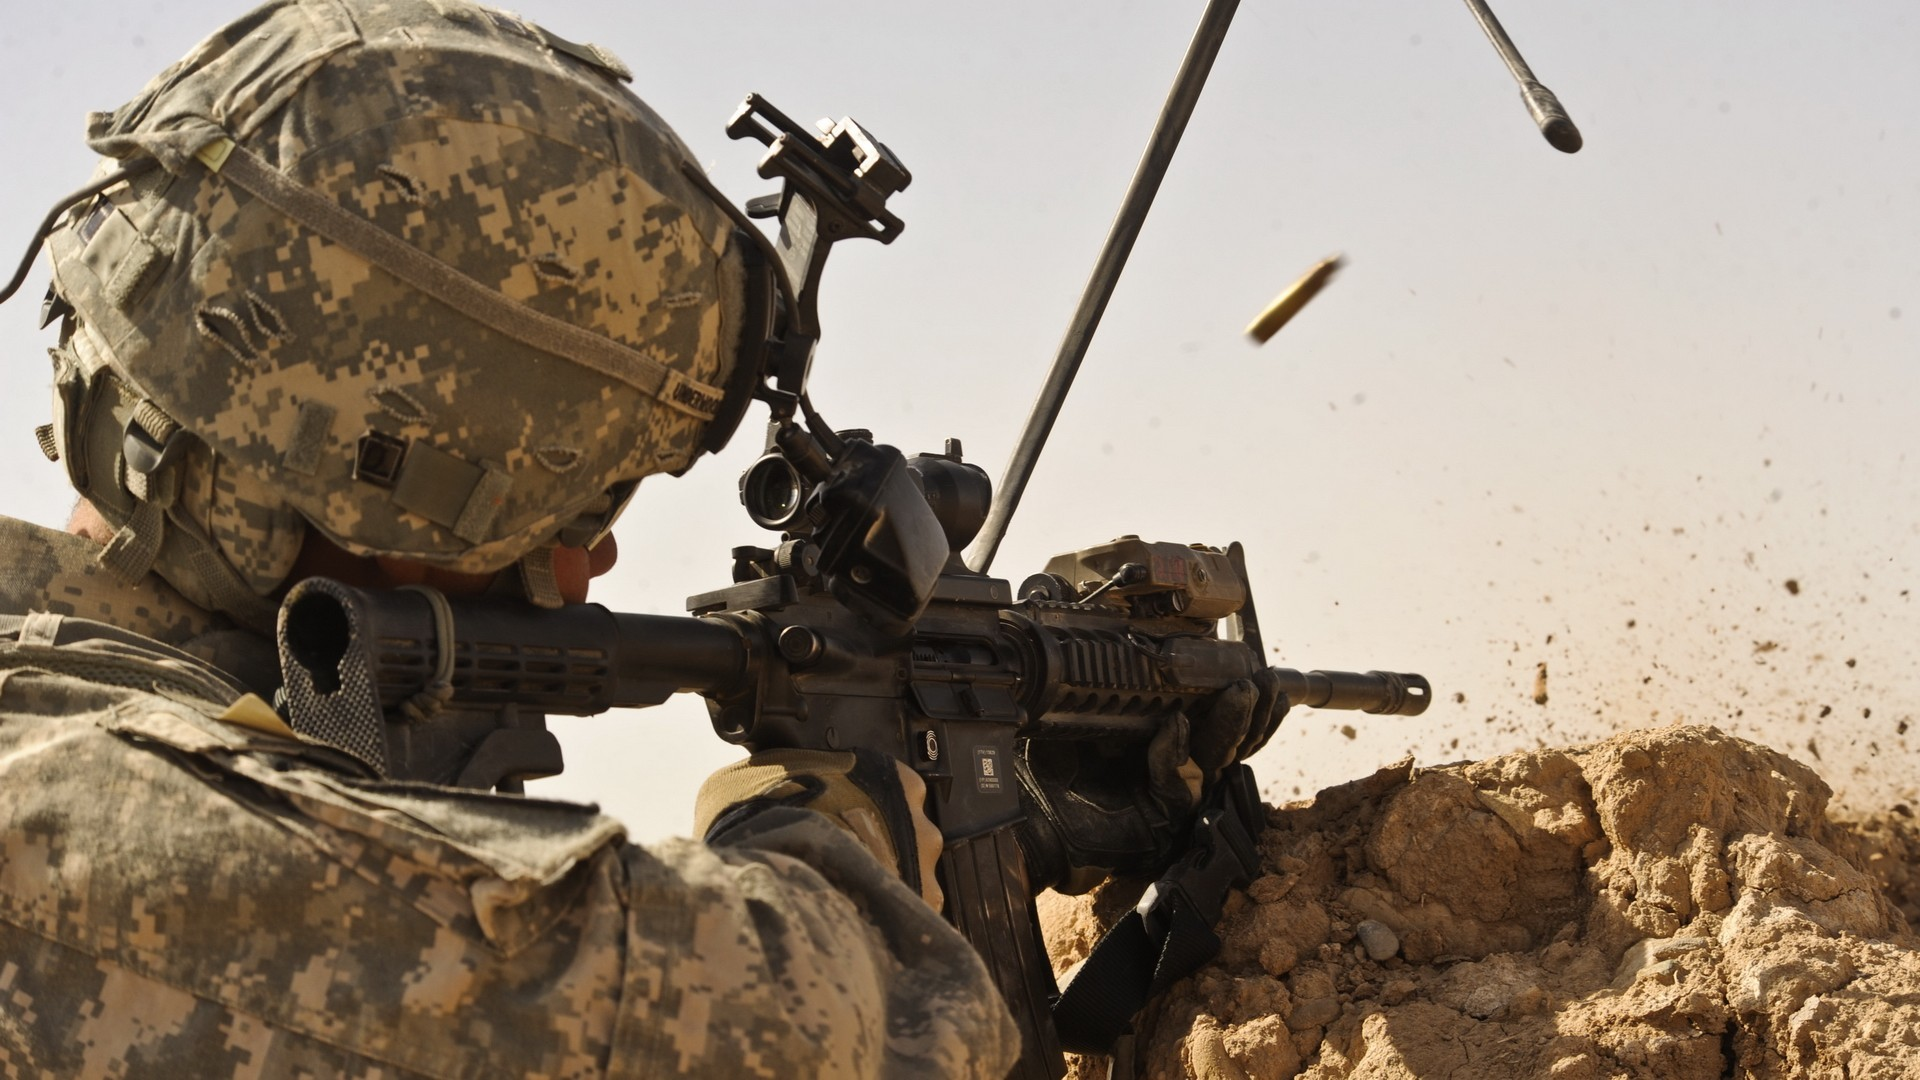 Us army infantry wallpaper 80 images - Army wallpaper hd 1080p ...